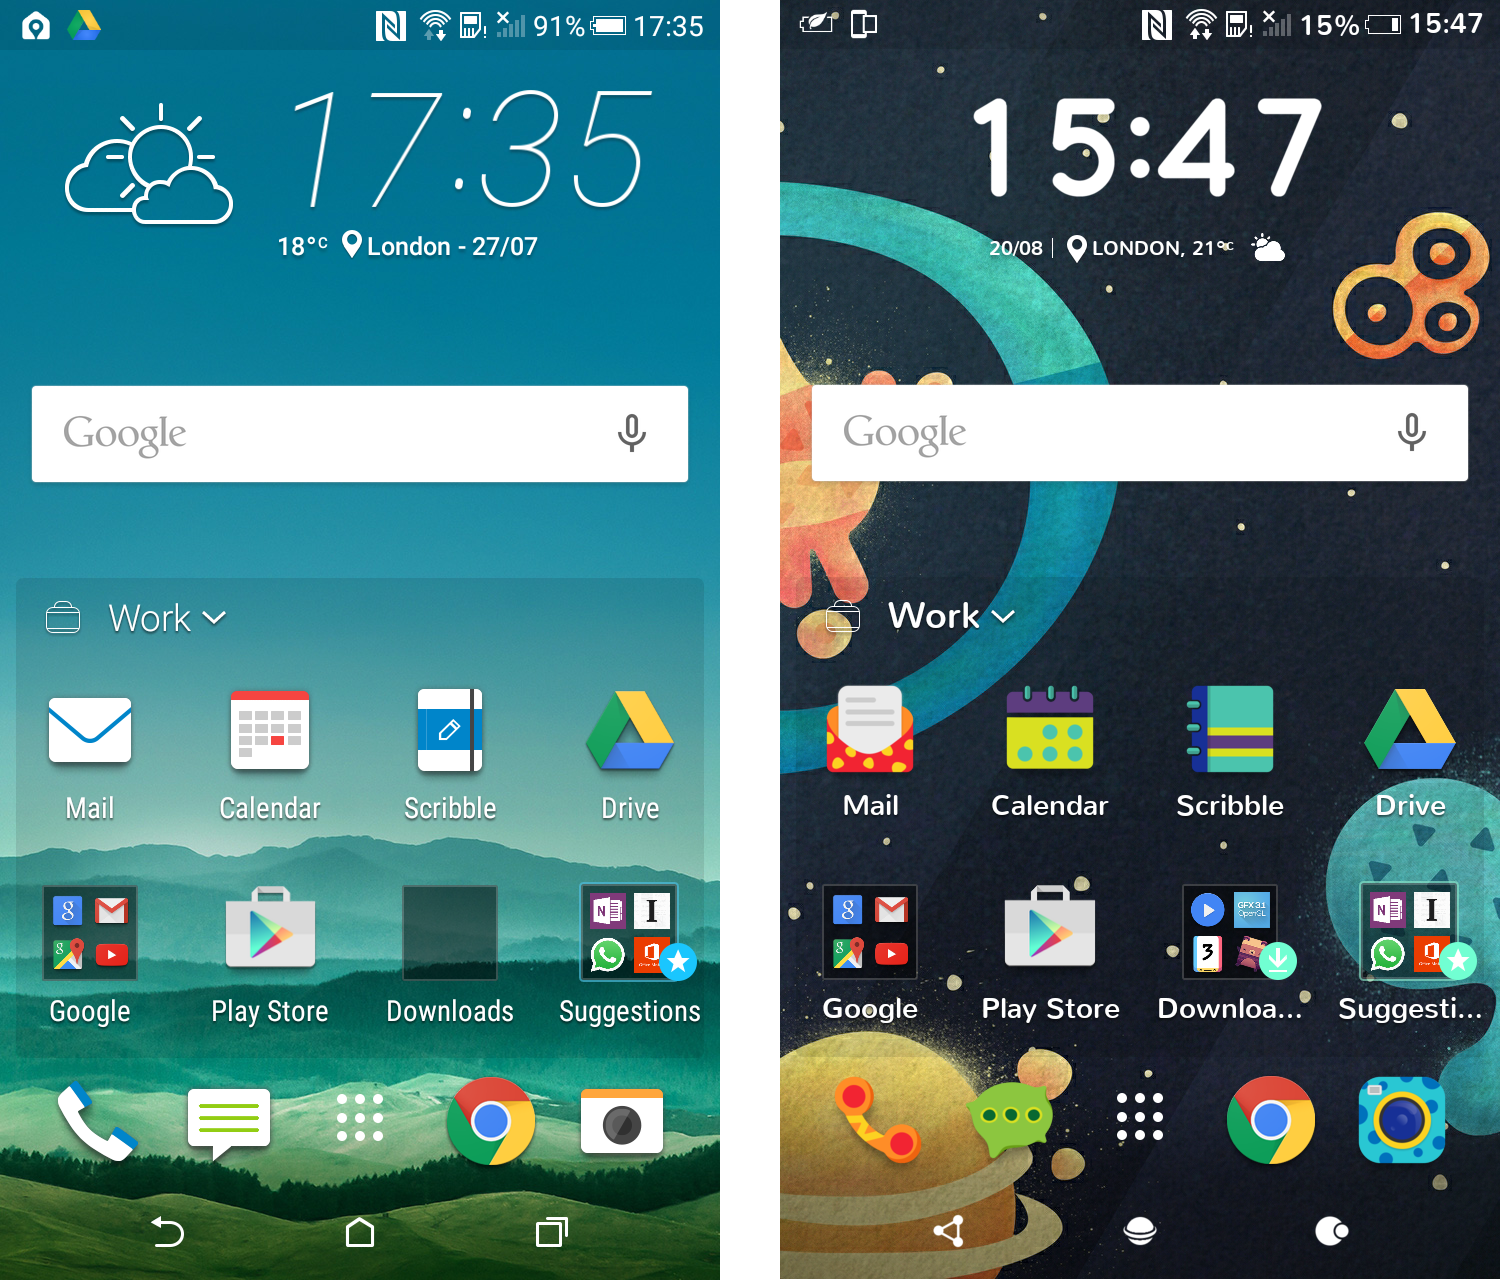 HTC Desire 626 Display, Battery Life, Camera, Conclusion & Specifications |  2 | Expert Reviews